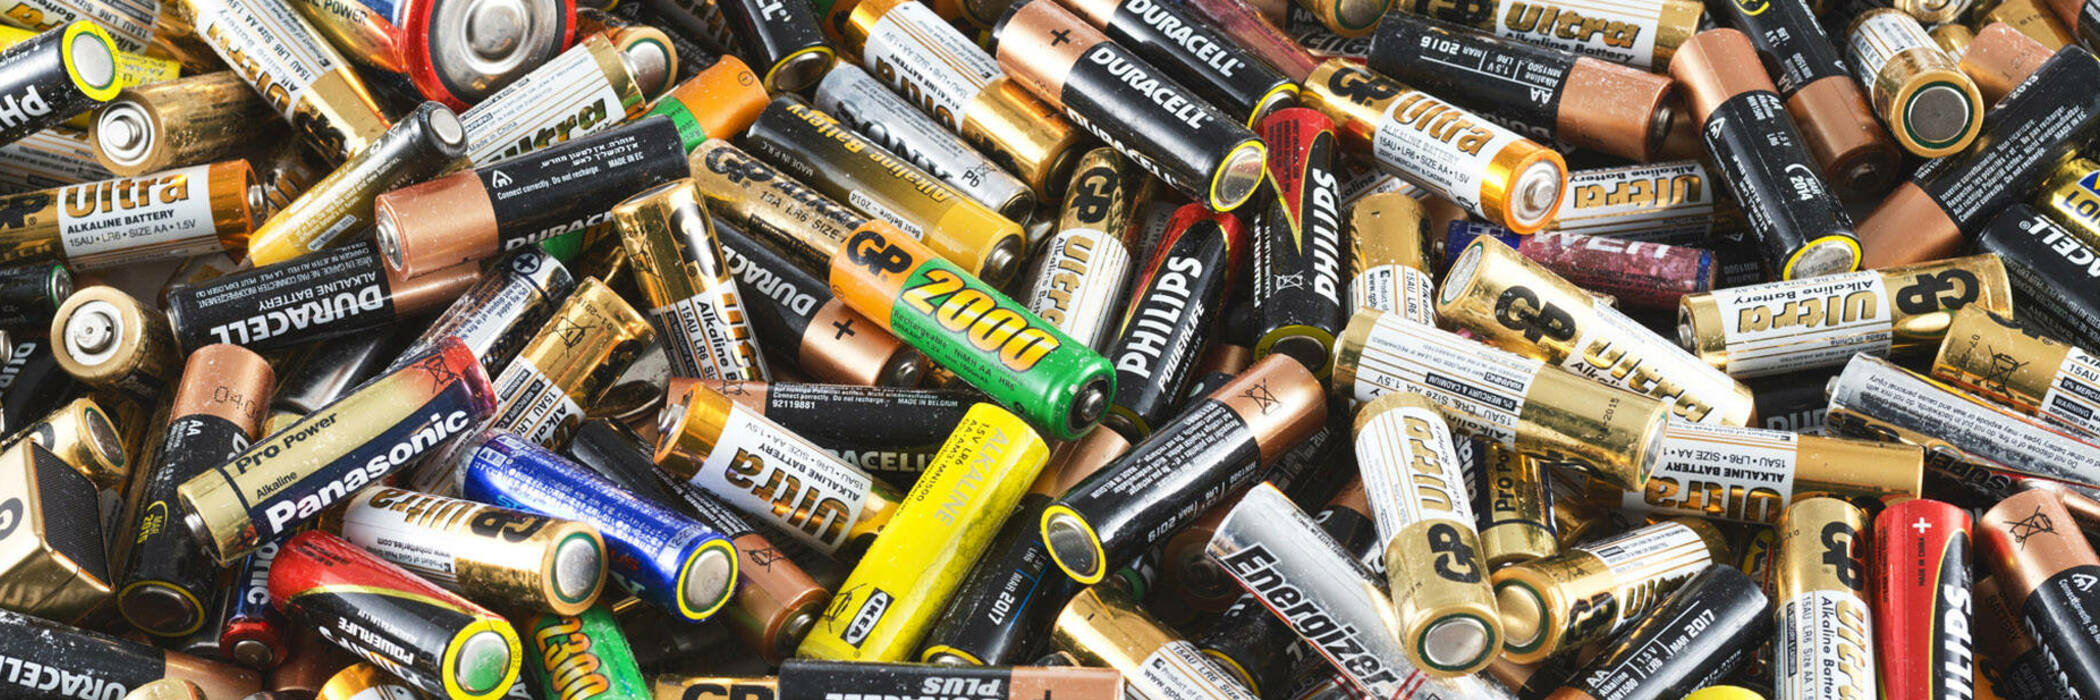 Recycling logo and used batteries